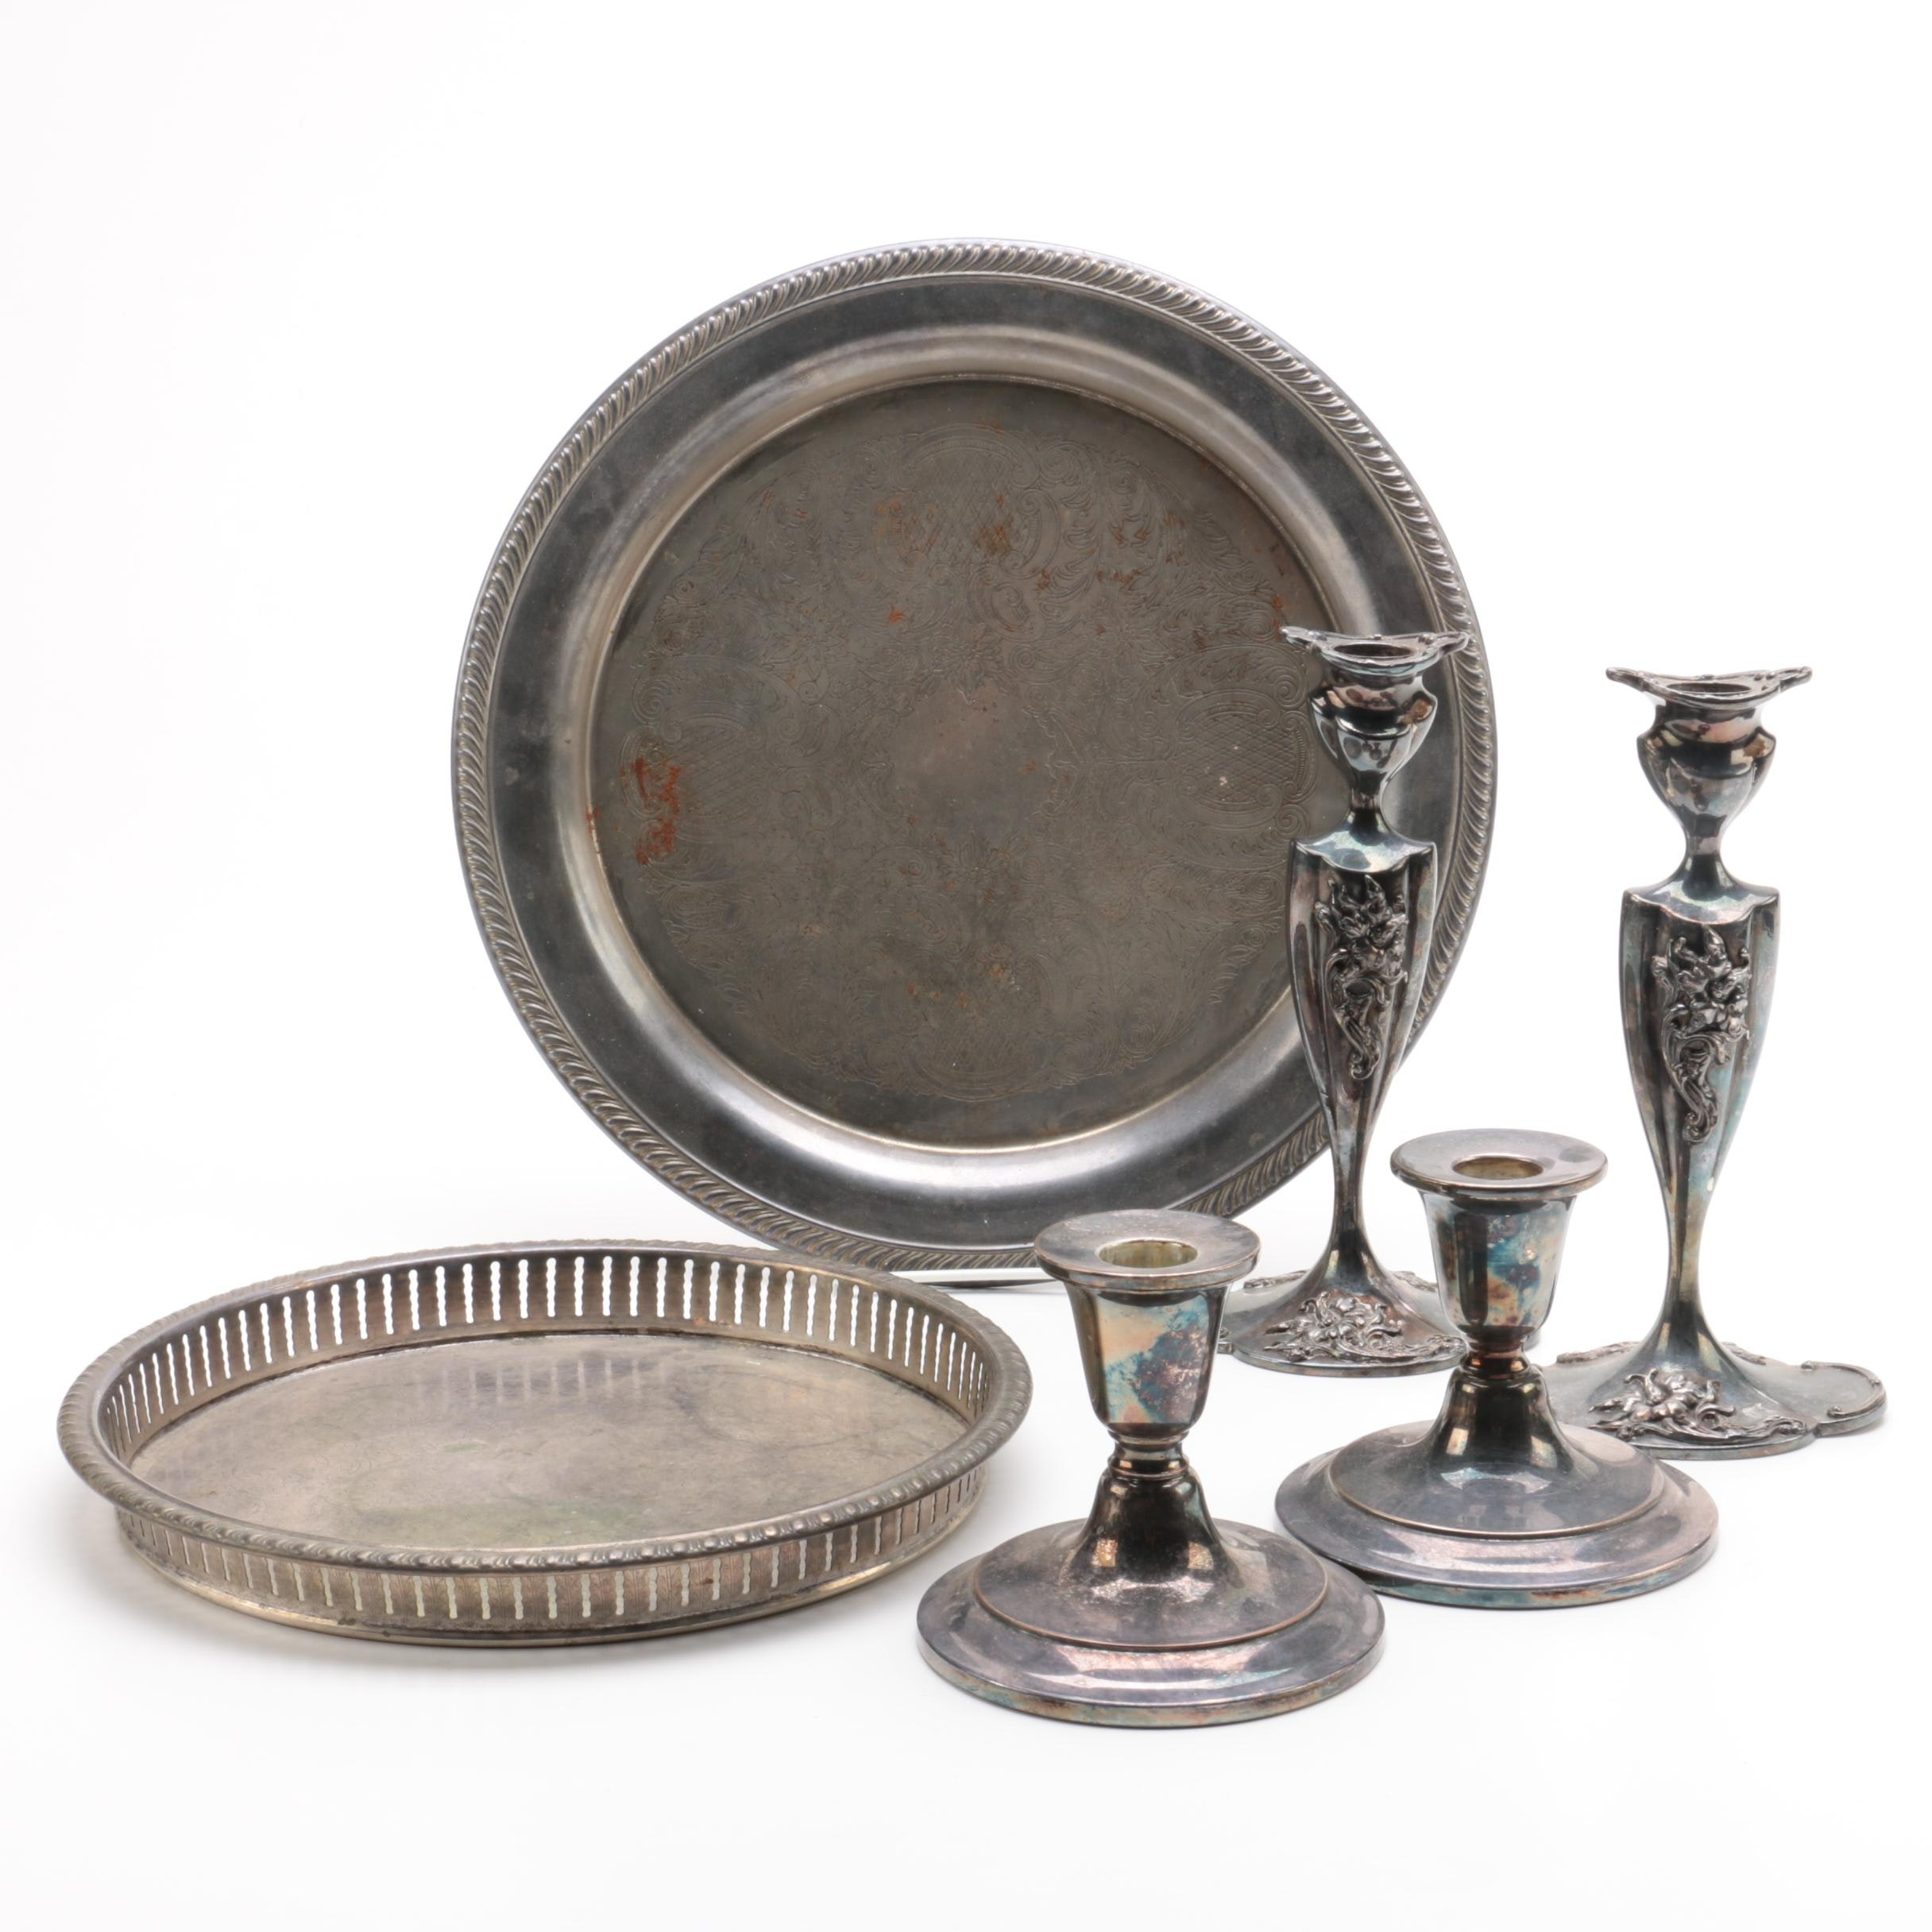 Art Nouveau Style Silver City Plate Candle Holders and Assorted Serveware ...  sc 1 st  EBTH.com & Art Nouveau Style Silver City Plate Candle Holders and Assorted ...